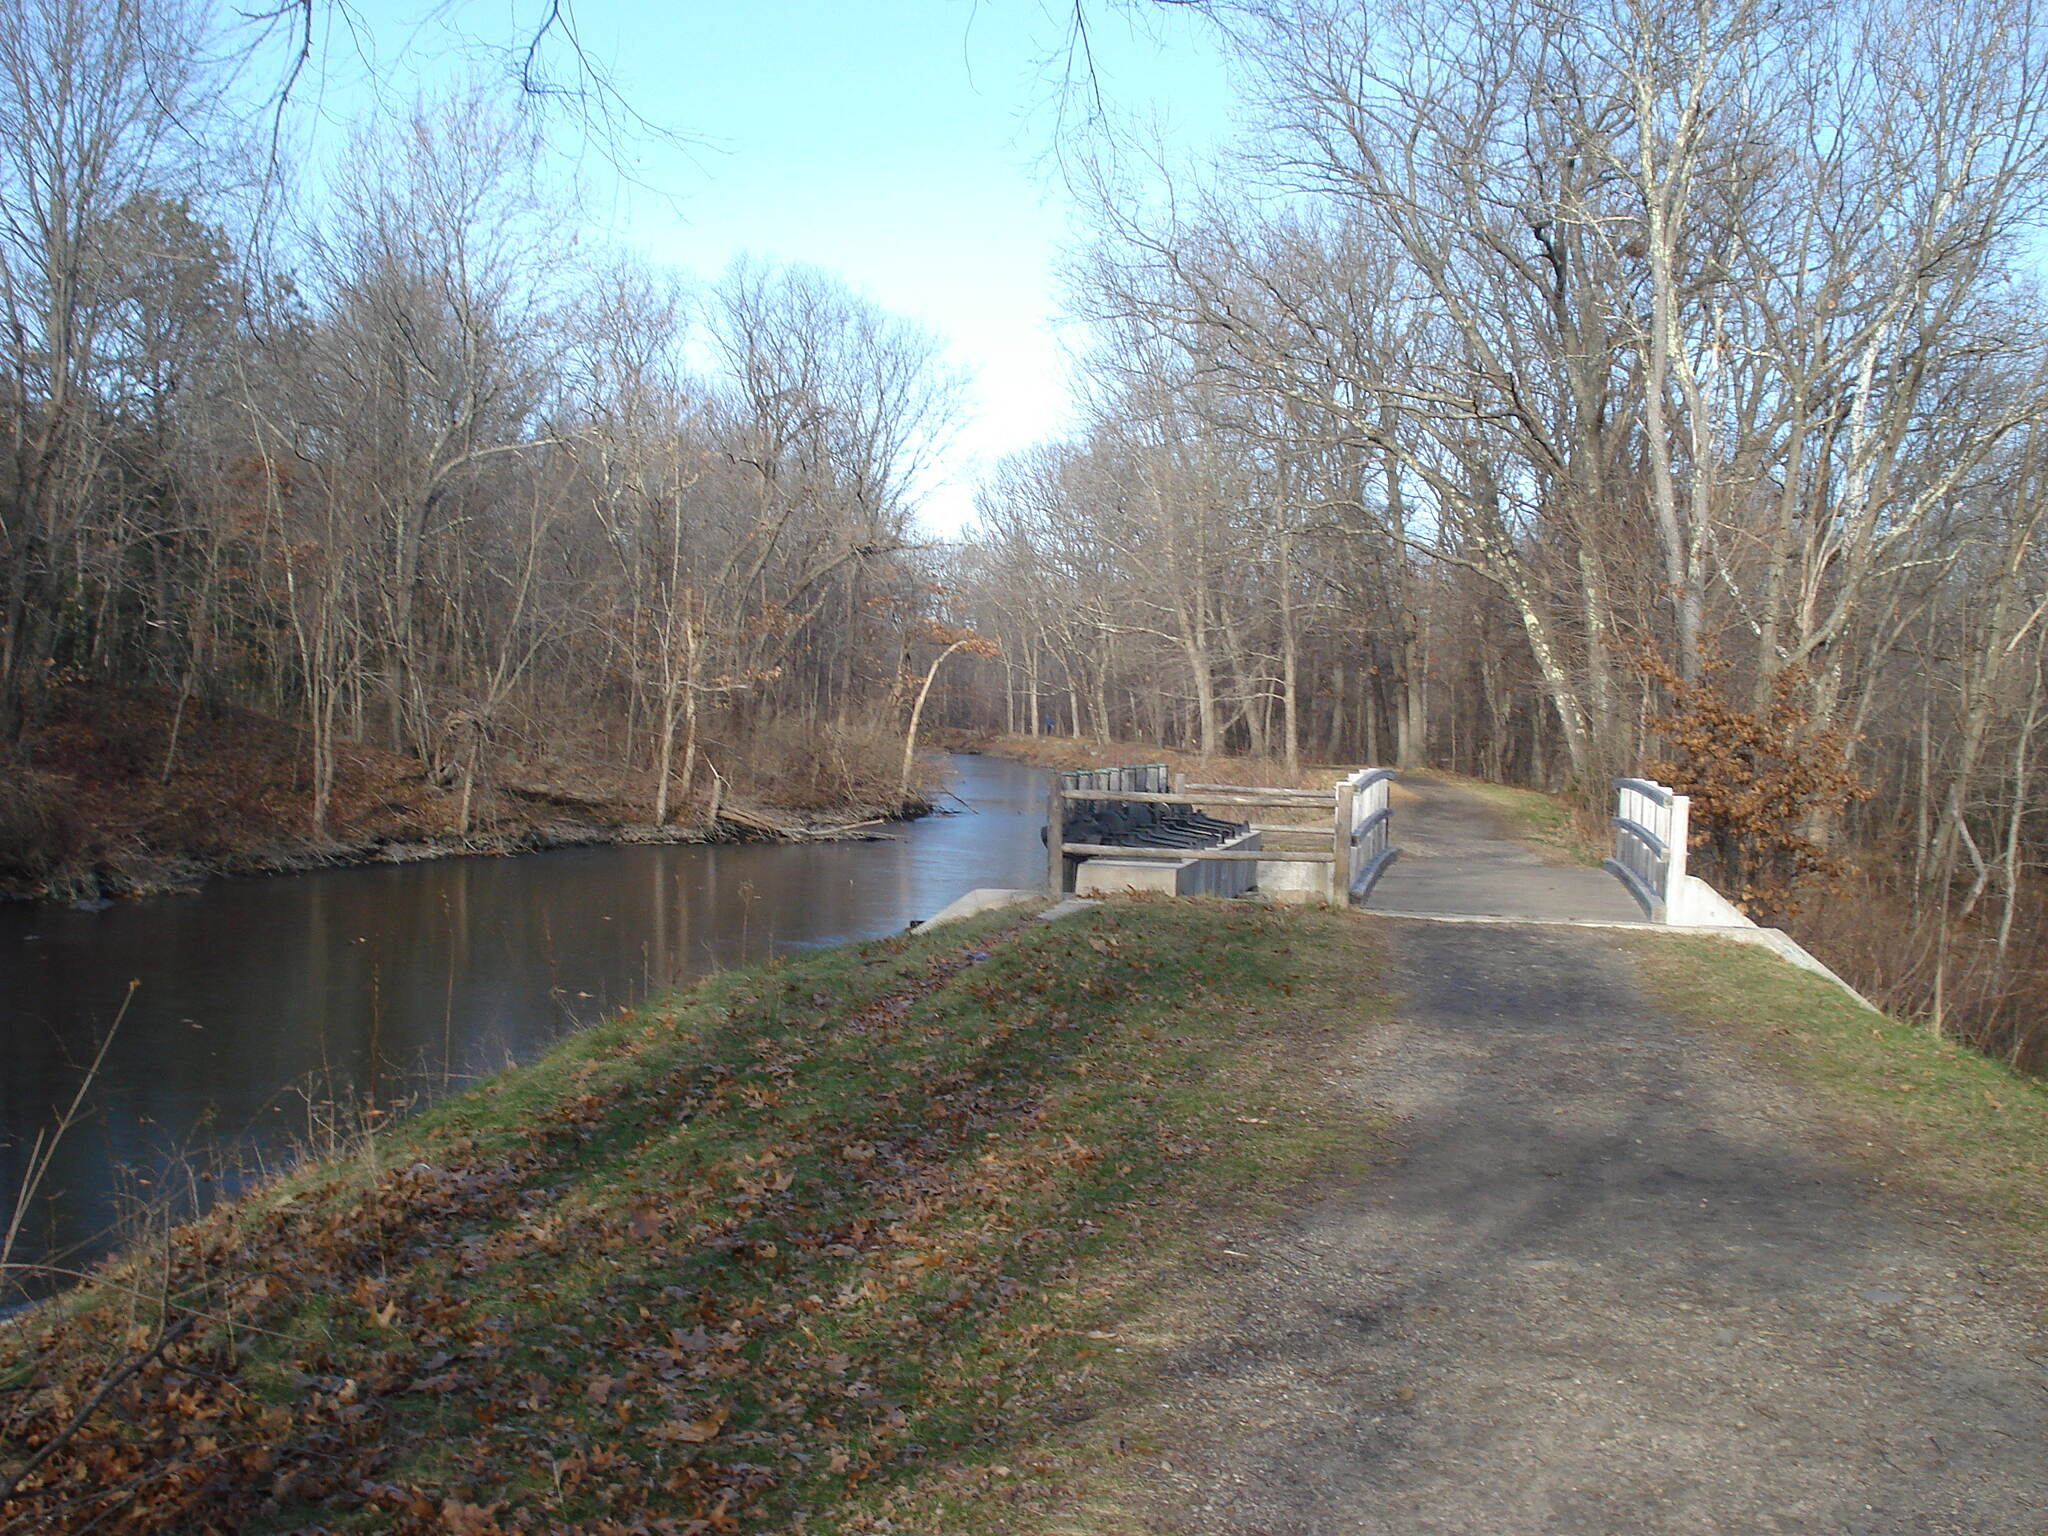 Blackstone River and Canal Heritage State Park Trail Looking north along the towpath towards the spillway north of the Stanley Woolen Mill with the canal on the left.